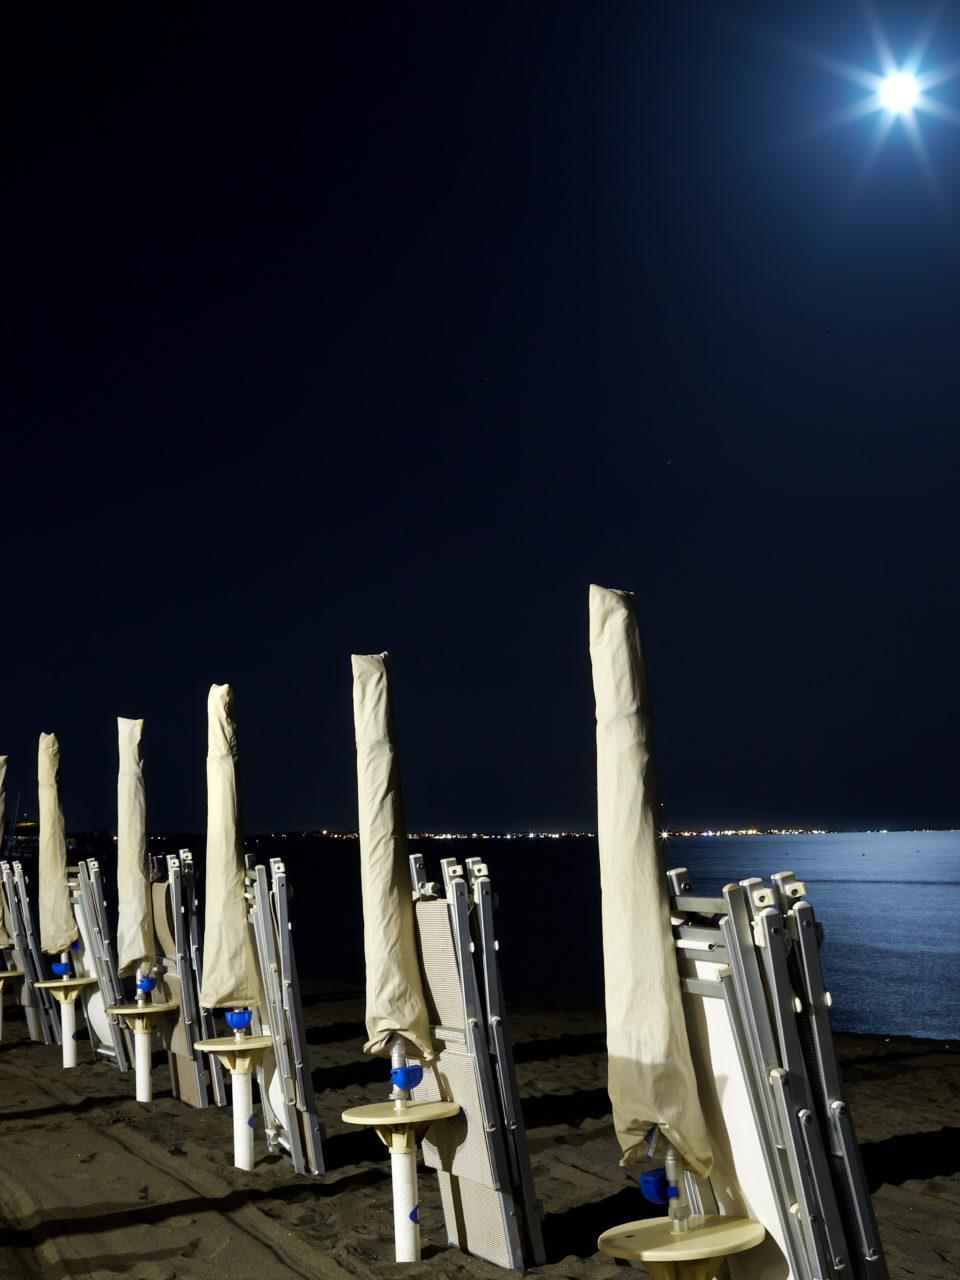 https://www.planetavenue.com/wp-content/uploads/2018/11/beach-under-full-moon-PNK9XTB-960x1280.jpg